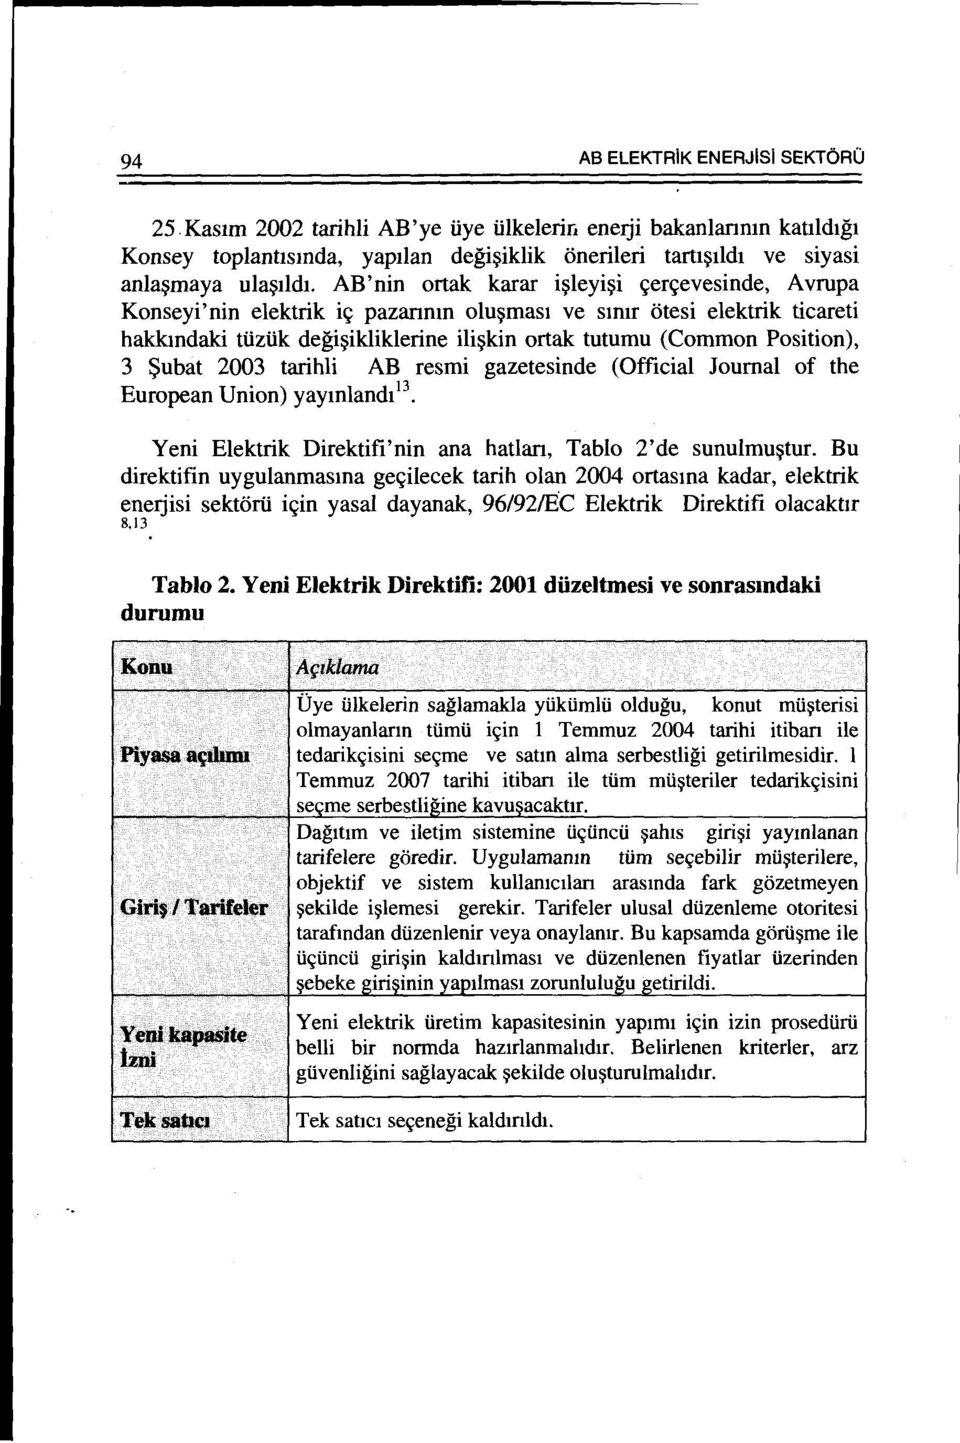 Position), 3 Subat 2003 tarihli AB resmi gazetesinde (Official Journal of the European Union) yaymland1 13 Yeni Elektrik Direktifi'nin ana hatlan, Tablo 2'de sunulmu~tur.